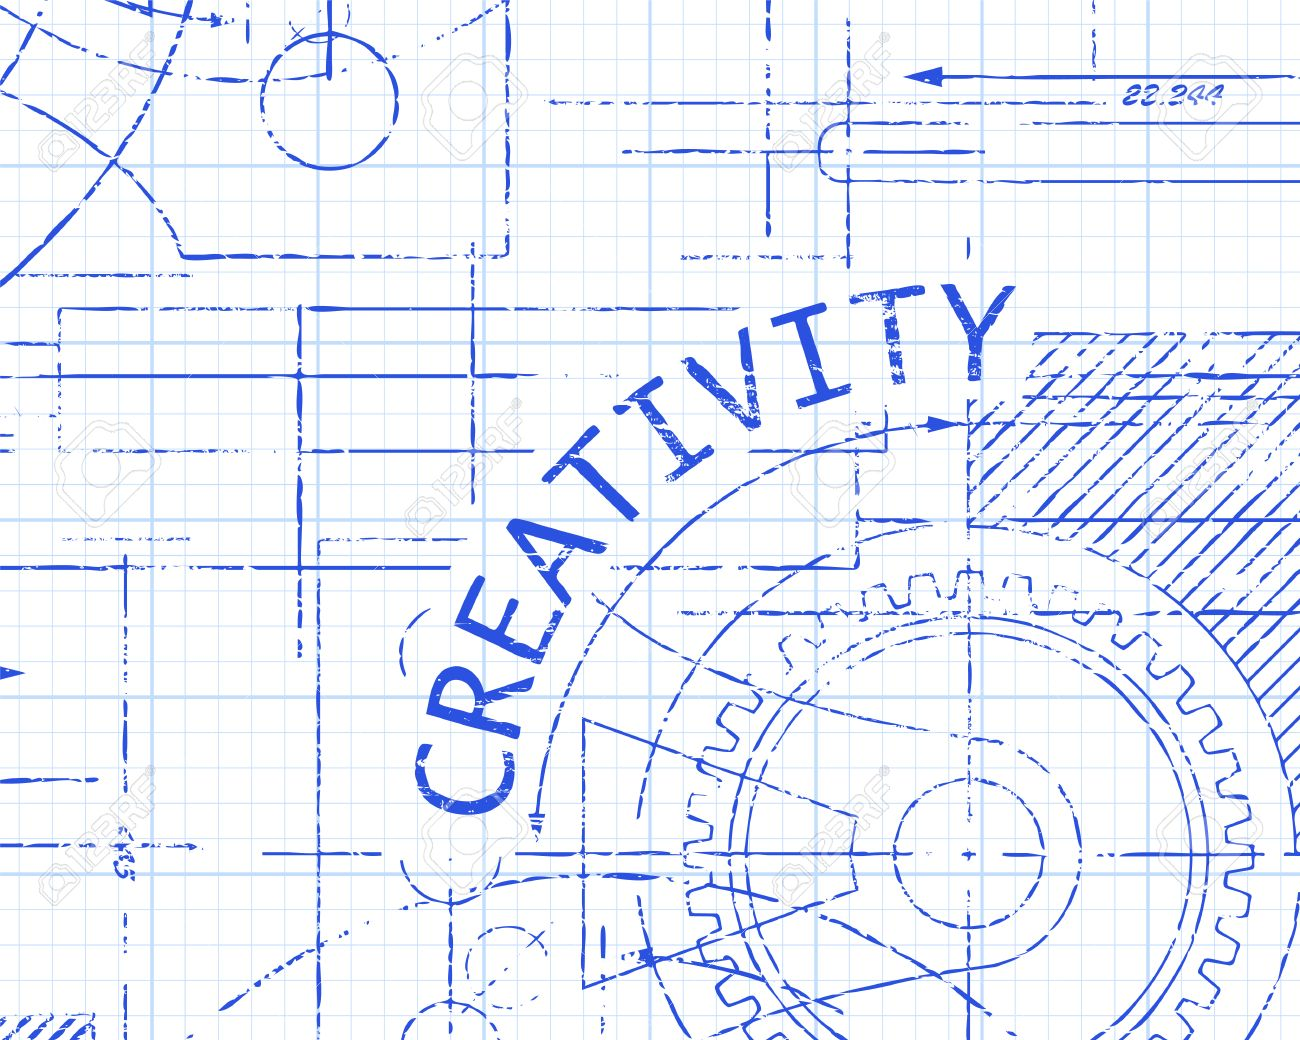 creativity text with gear wheels hand drawn on graph paper technical